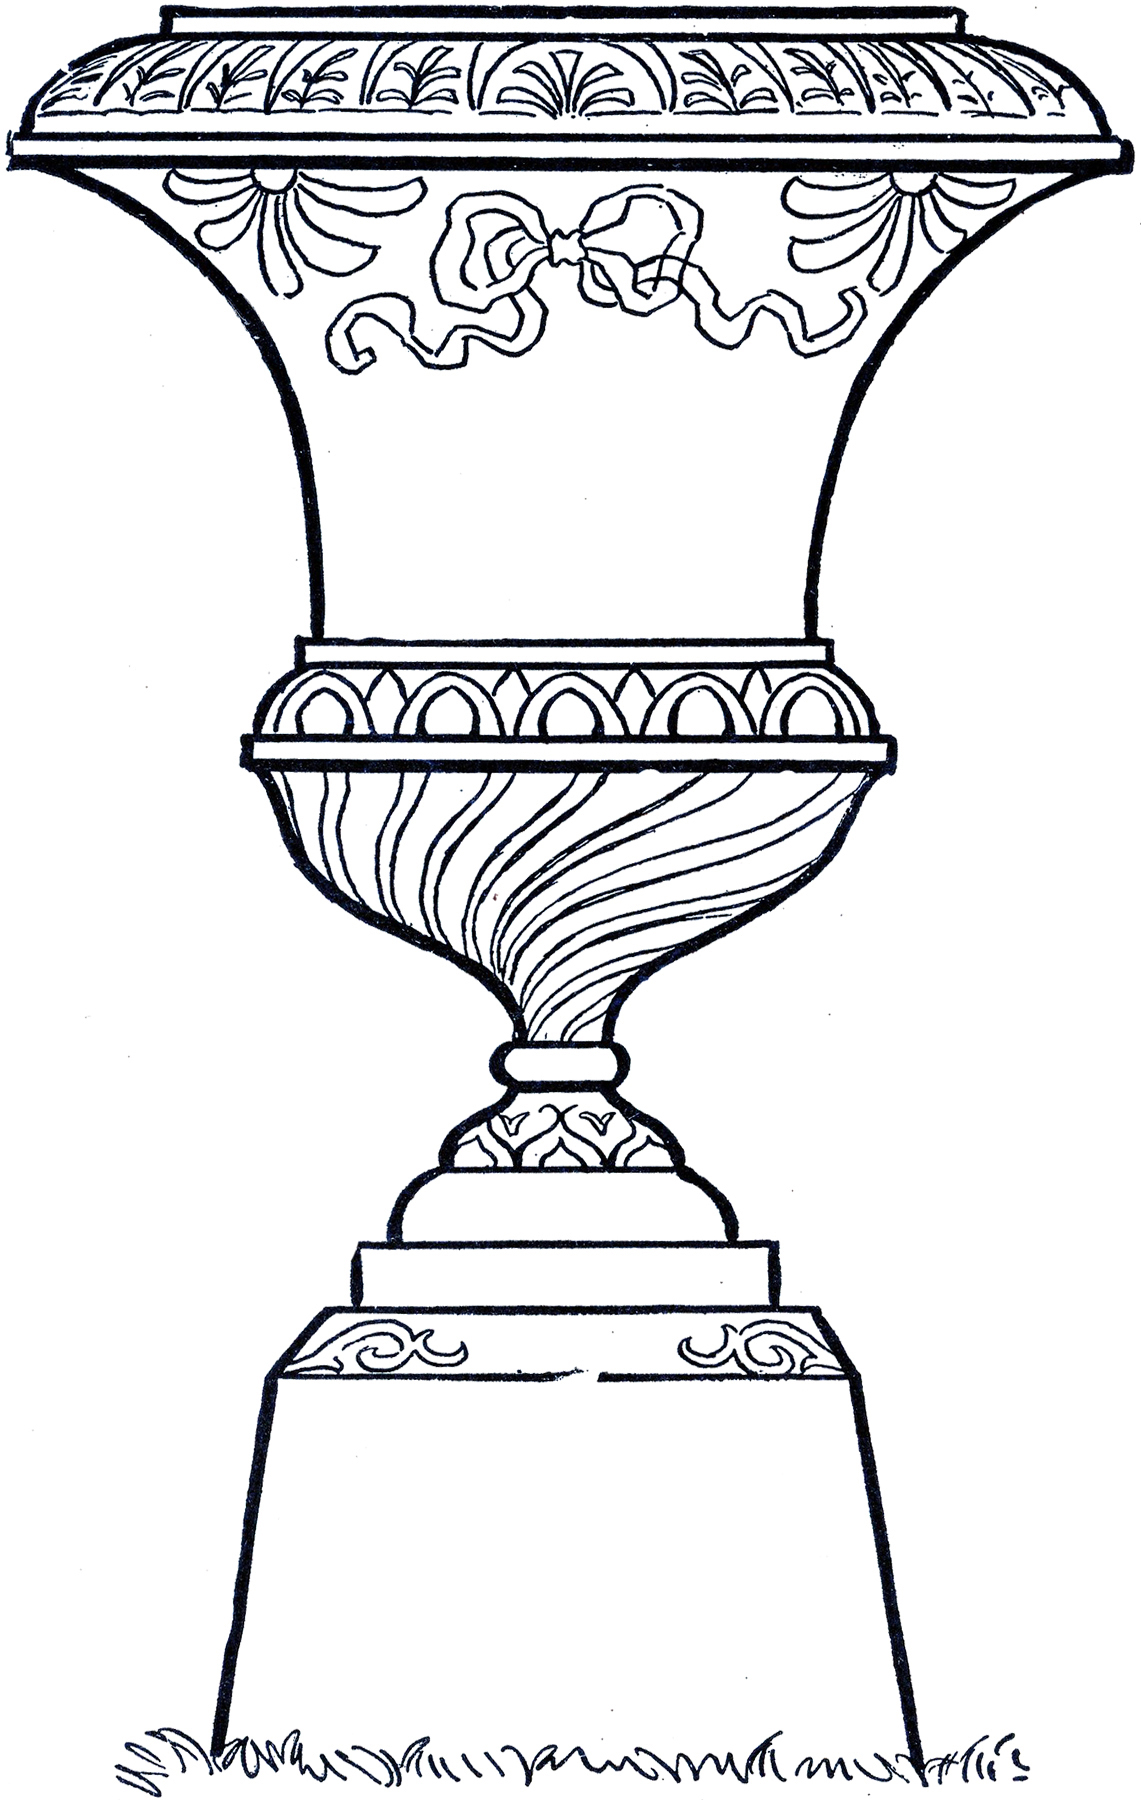 Printable Nm Pottery Coloring Pages also One For All Digital Aerial also Pattern Flower Vase Cliparts also Vase 2 also Post easy Greek Vases Drawings 622092. on greek vase drawing